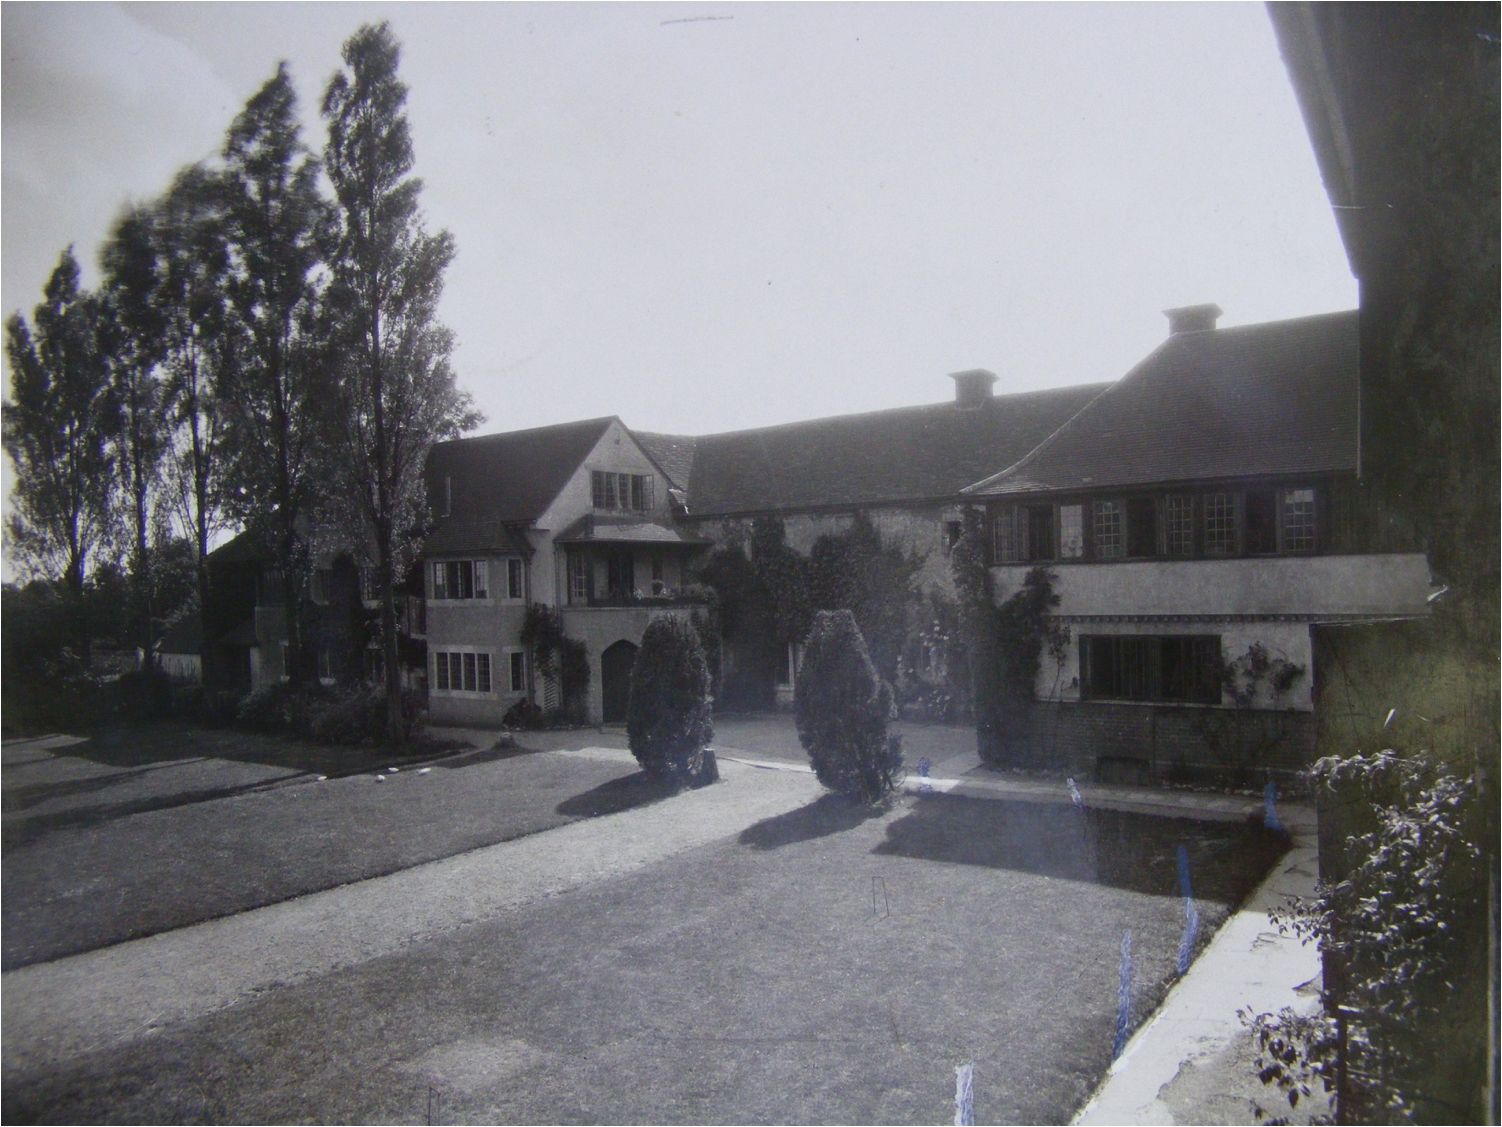 The Priory School, Kings Langley in 1922, as Rudolf Steiner would have seen it when he visited in April of that year.